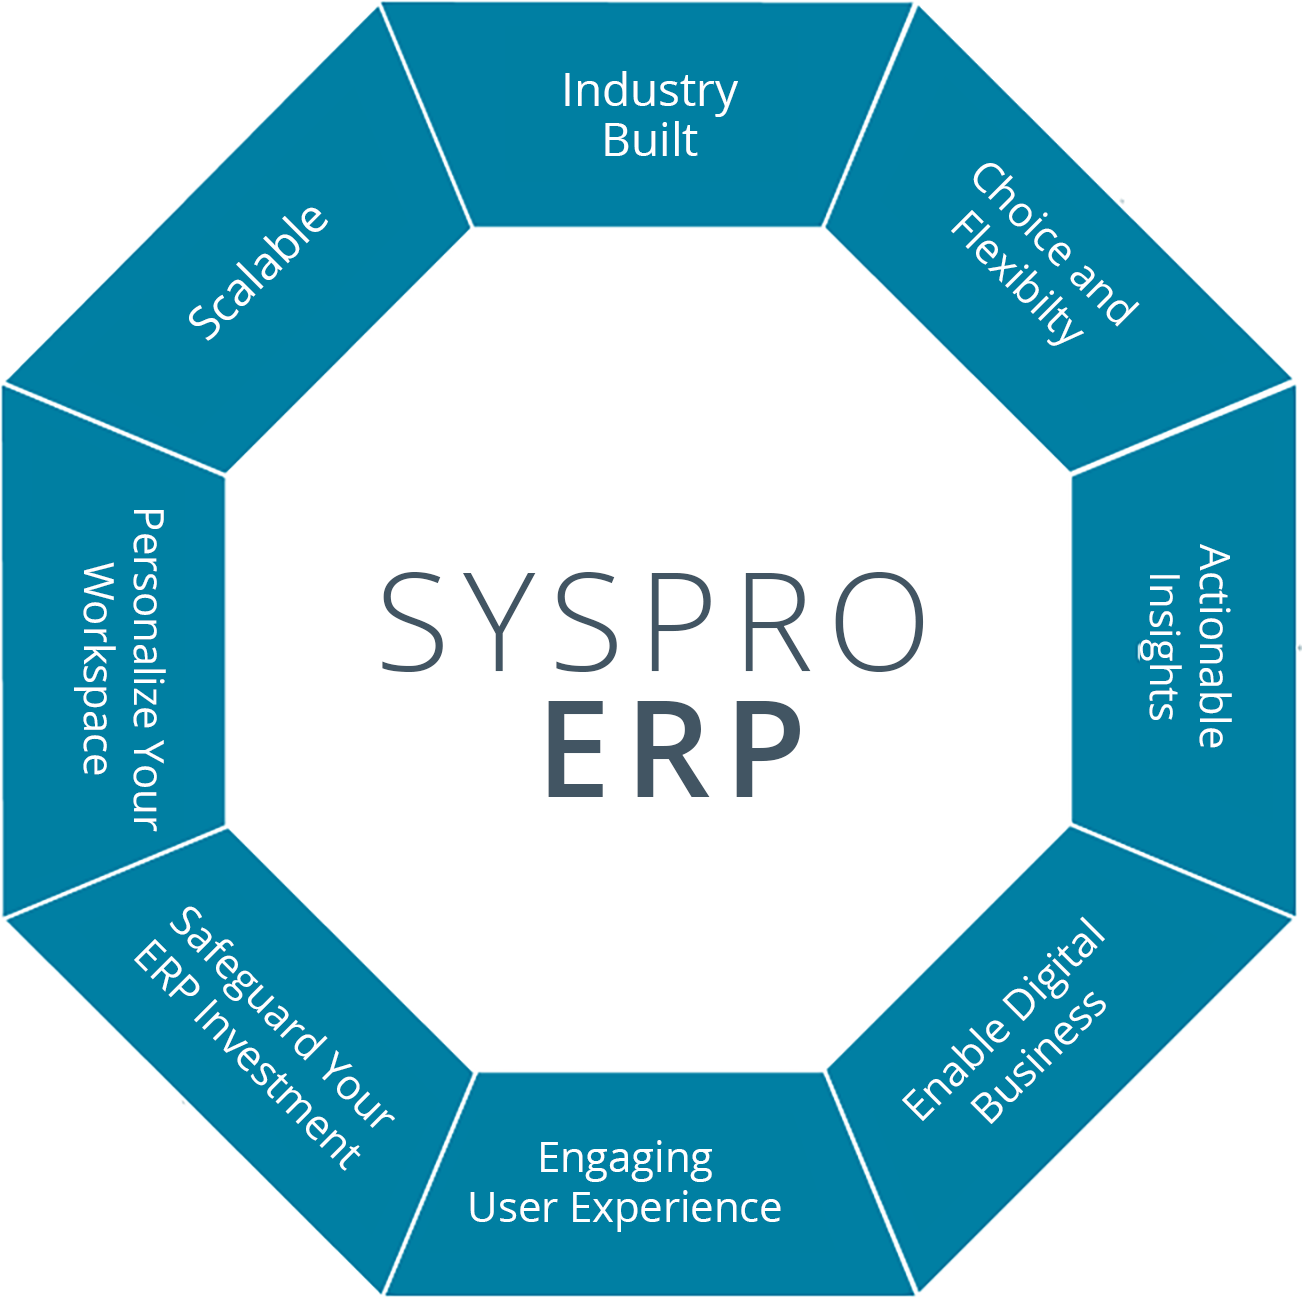 management information system erp sys in tata Erp systems help connect the wider-enterprise, allowing for resource capacity planning, job costing, asset tracking, and providing an array of business value, in terms of: optimizing data input and management by leveraging automation.